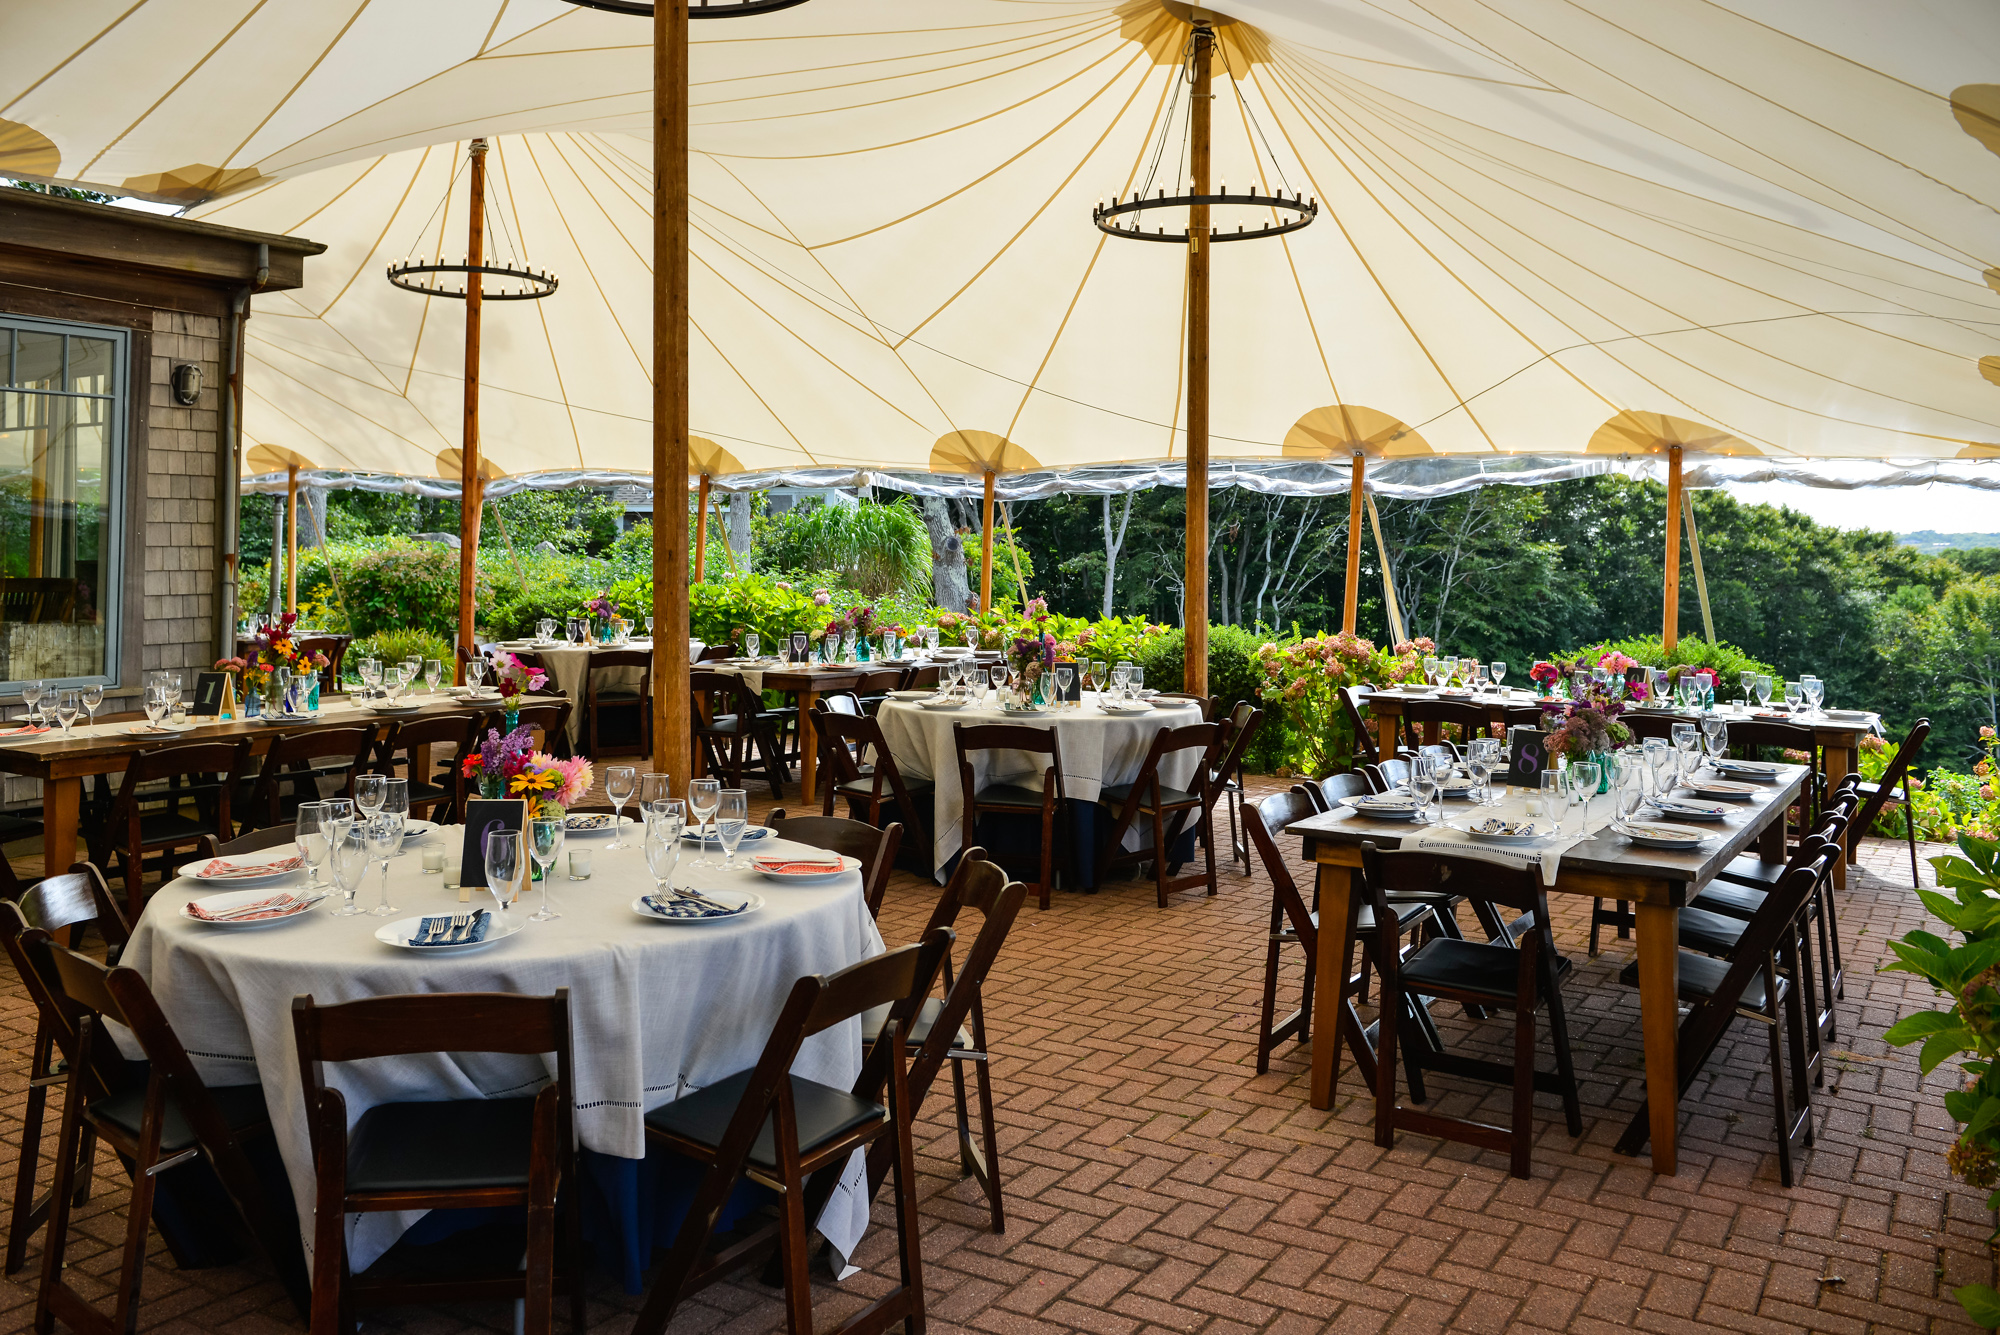 A wedding reception setup under a tent at The Beach Plum Inn & Restaurant photo by David Welch Photography